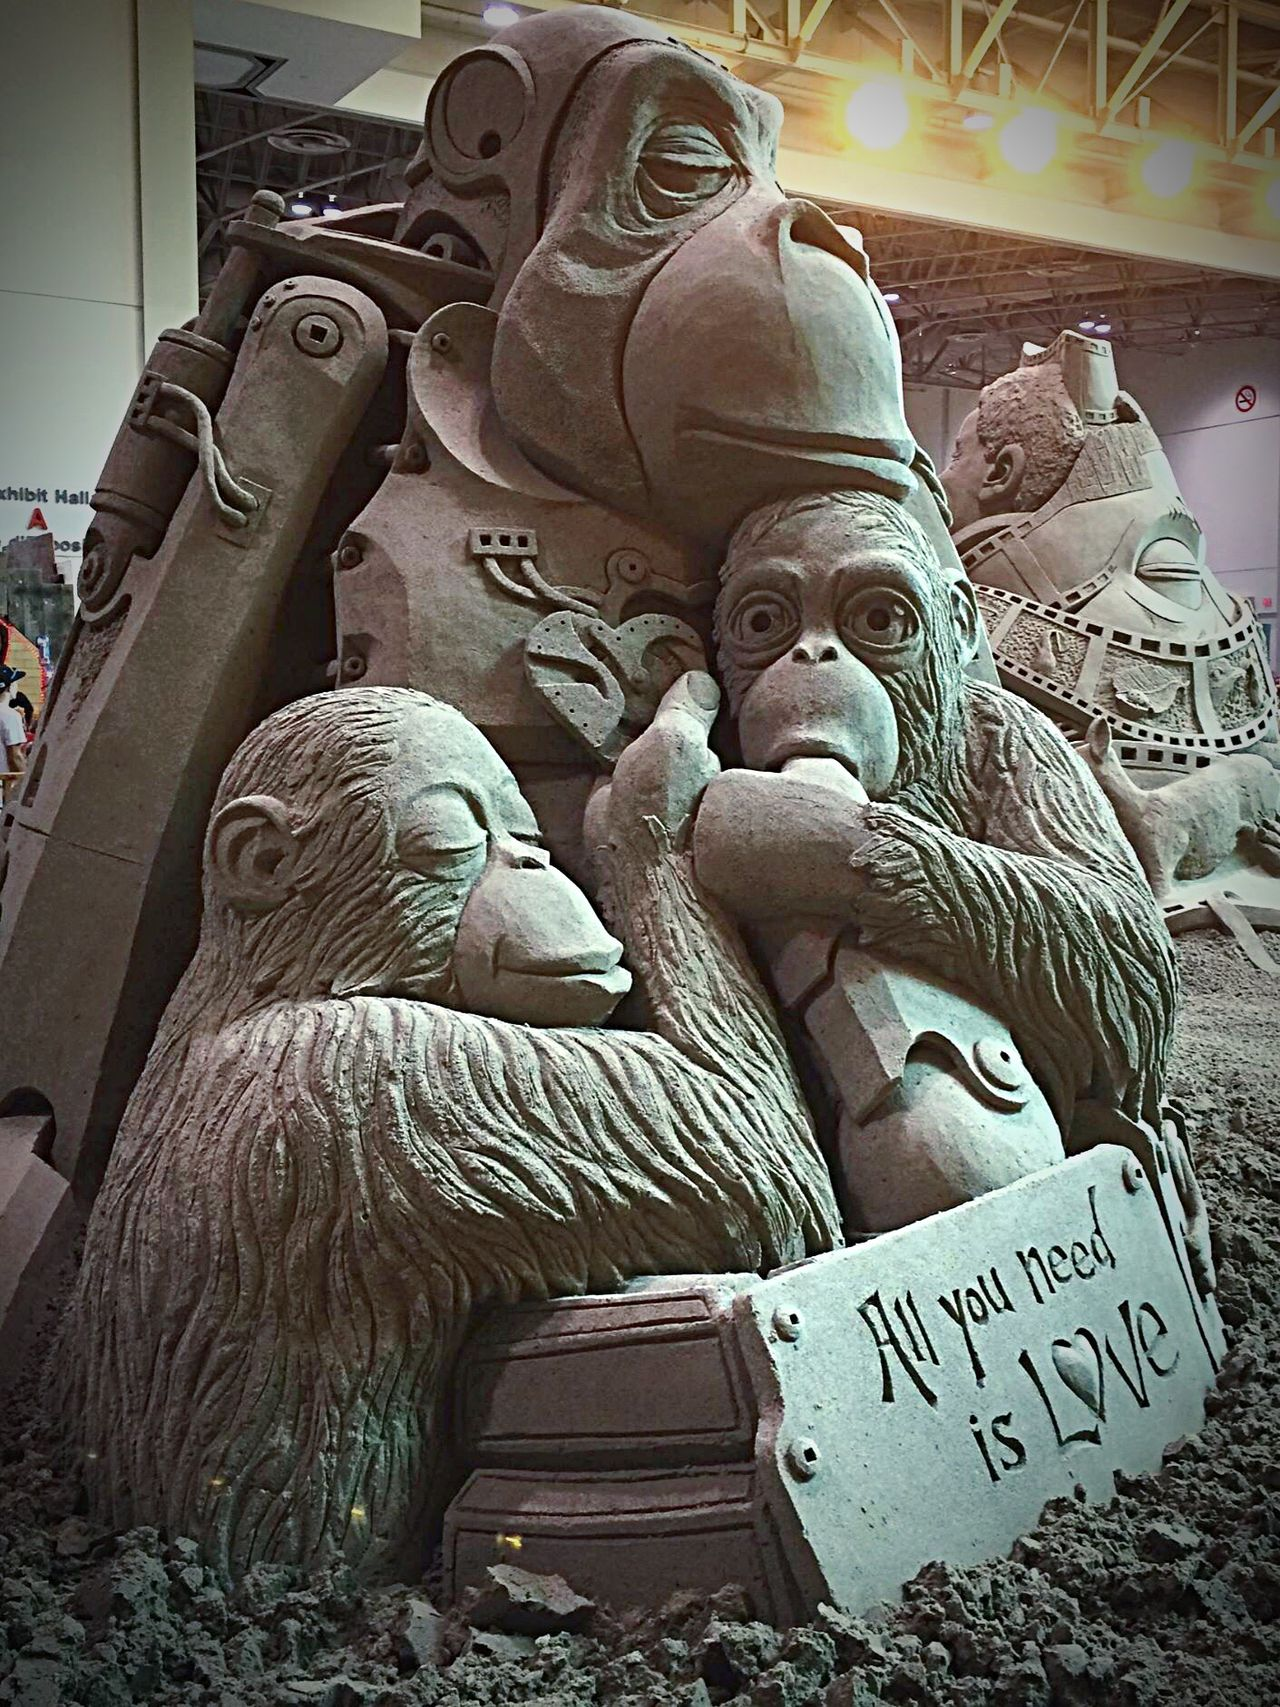 Sandcastles Sand Sandsculpture CNE Allyouneedislove All You Need Is Love EyeEm Gallery IPhoneography Eye4photography  Photography Is My Escape From Reality! Taking Photos Summertime Torontophotographer Photography WhoDoYouLove Falling In Love Monkey Monkeys Family 3 Lil Monkeys